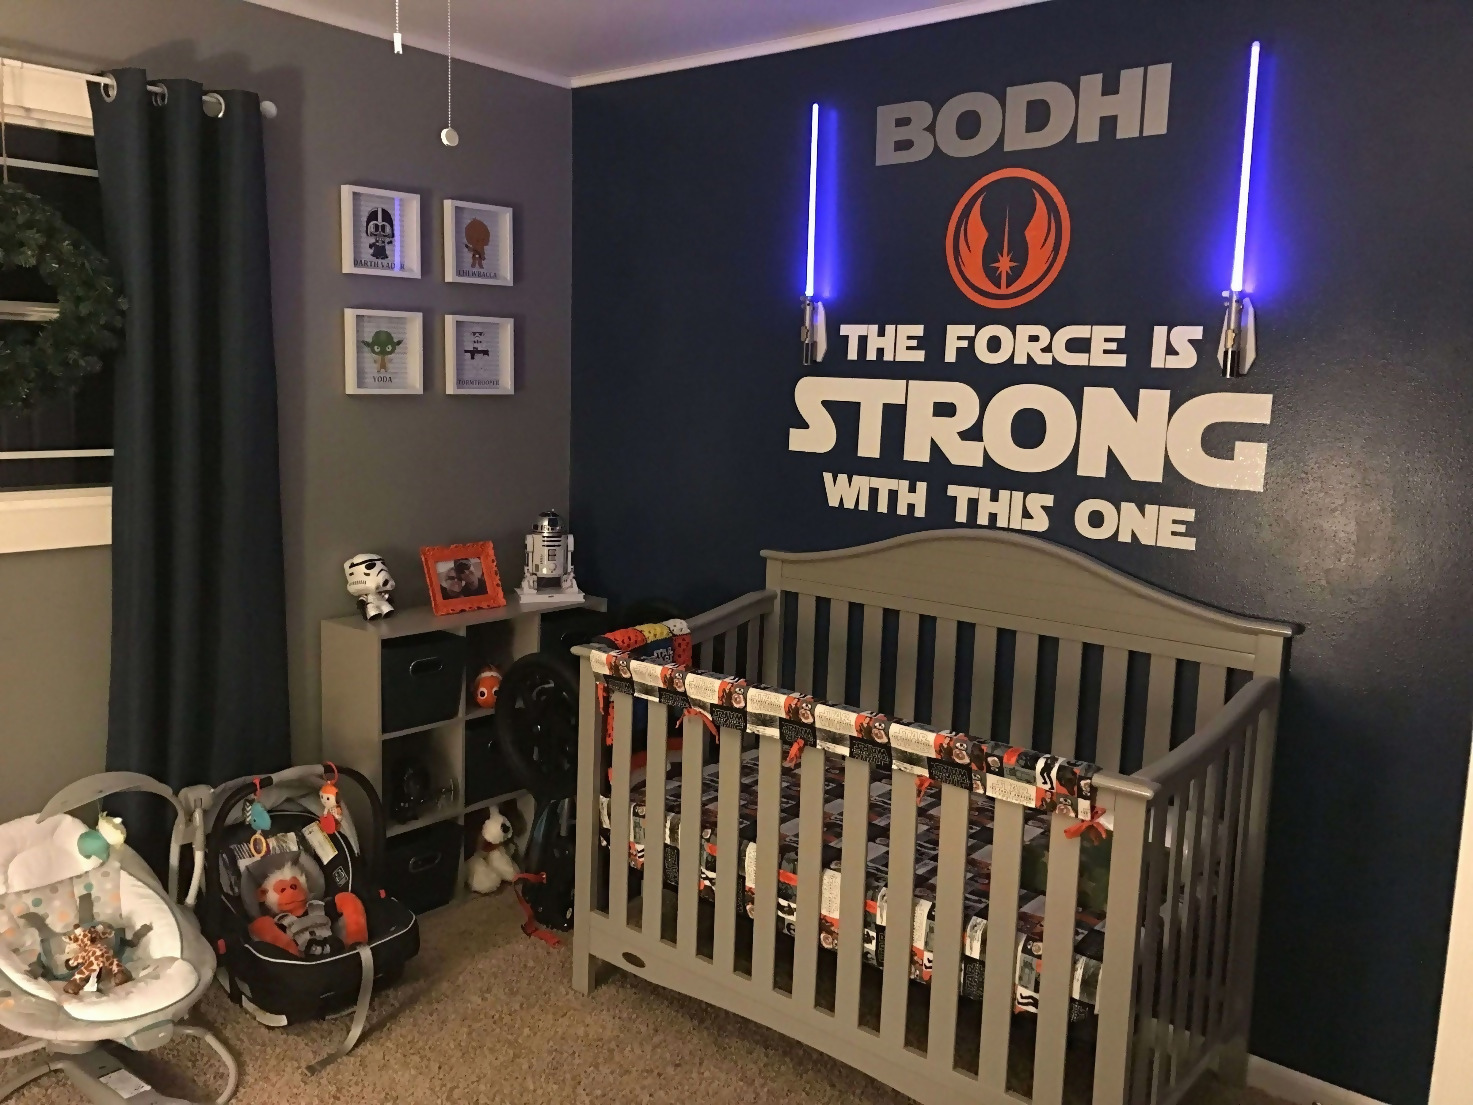 Cool Star Wars Bedroom Decor Ideas Star Wars Baby Room Star